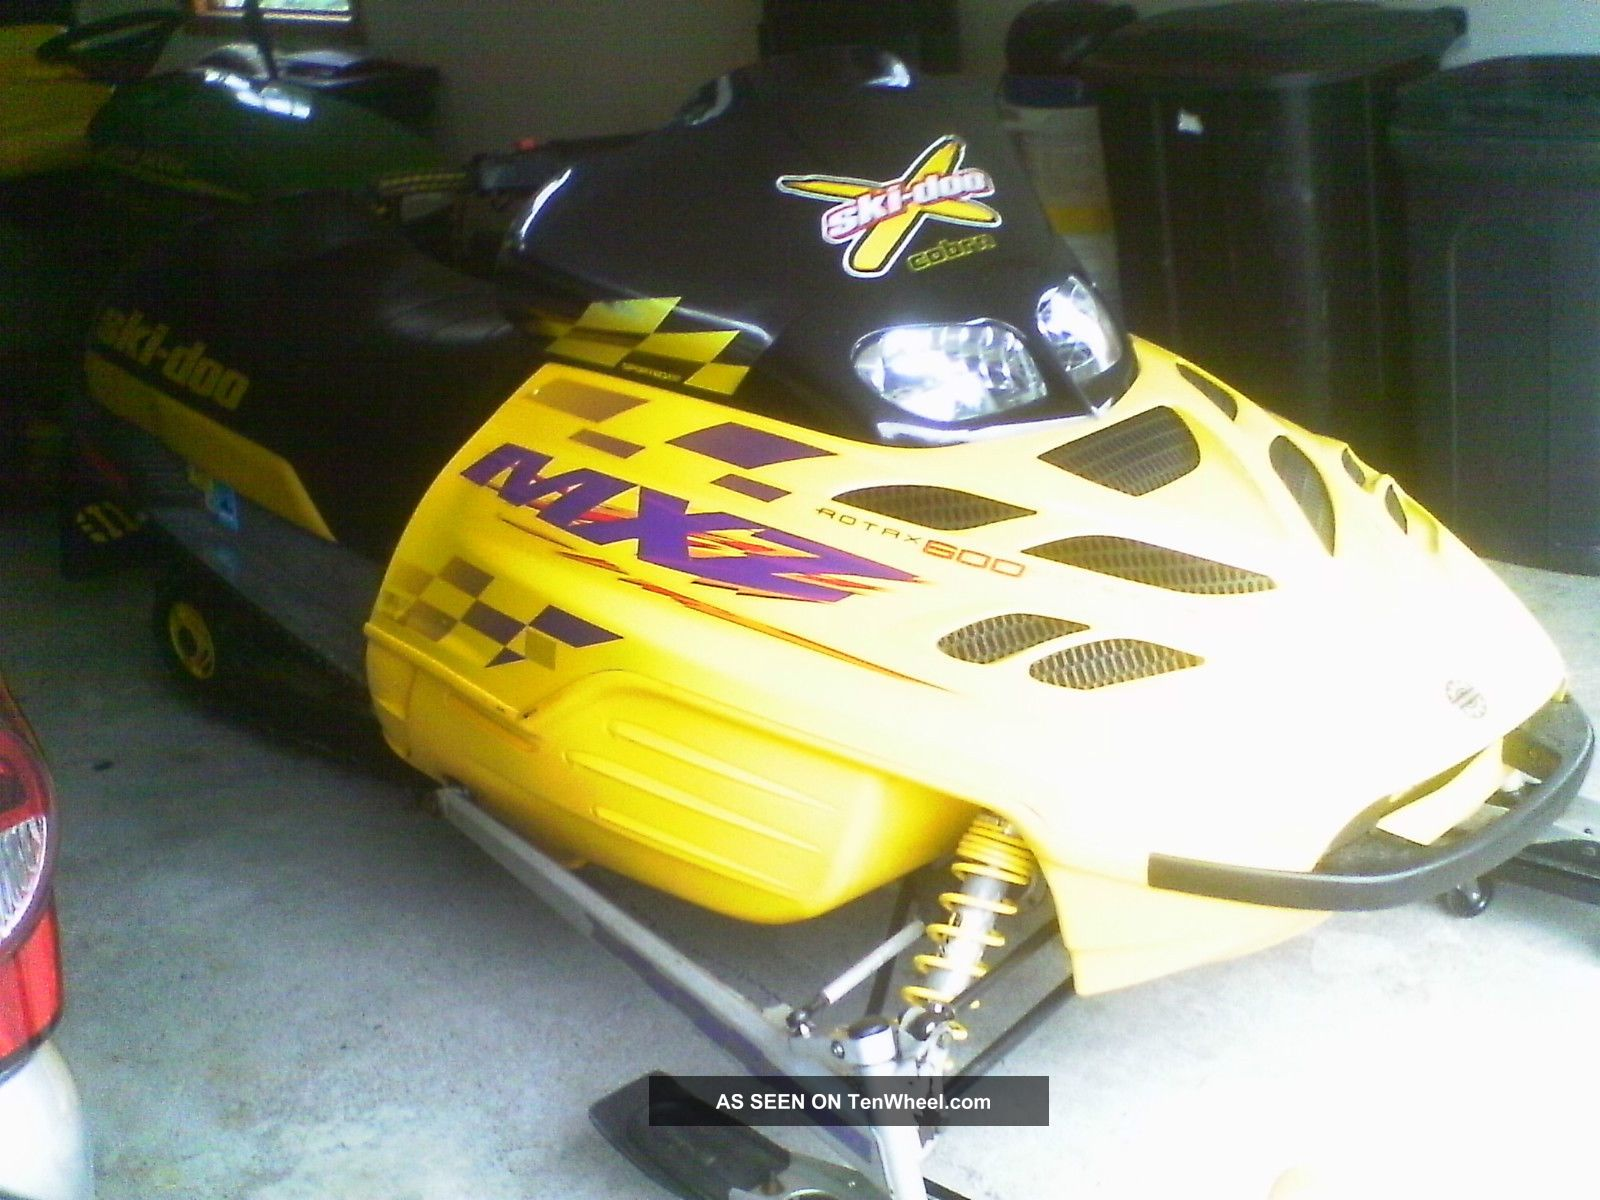 1999 Ski - Doo Mxz 600 Ski-Doo photo